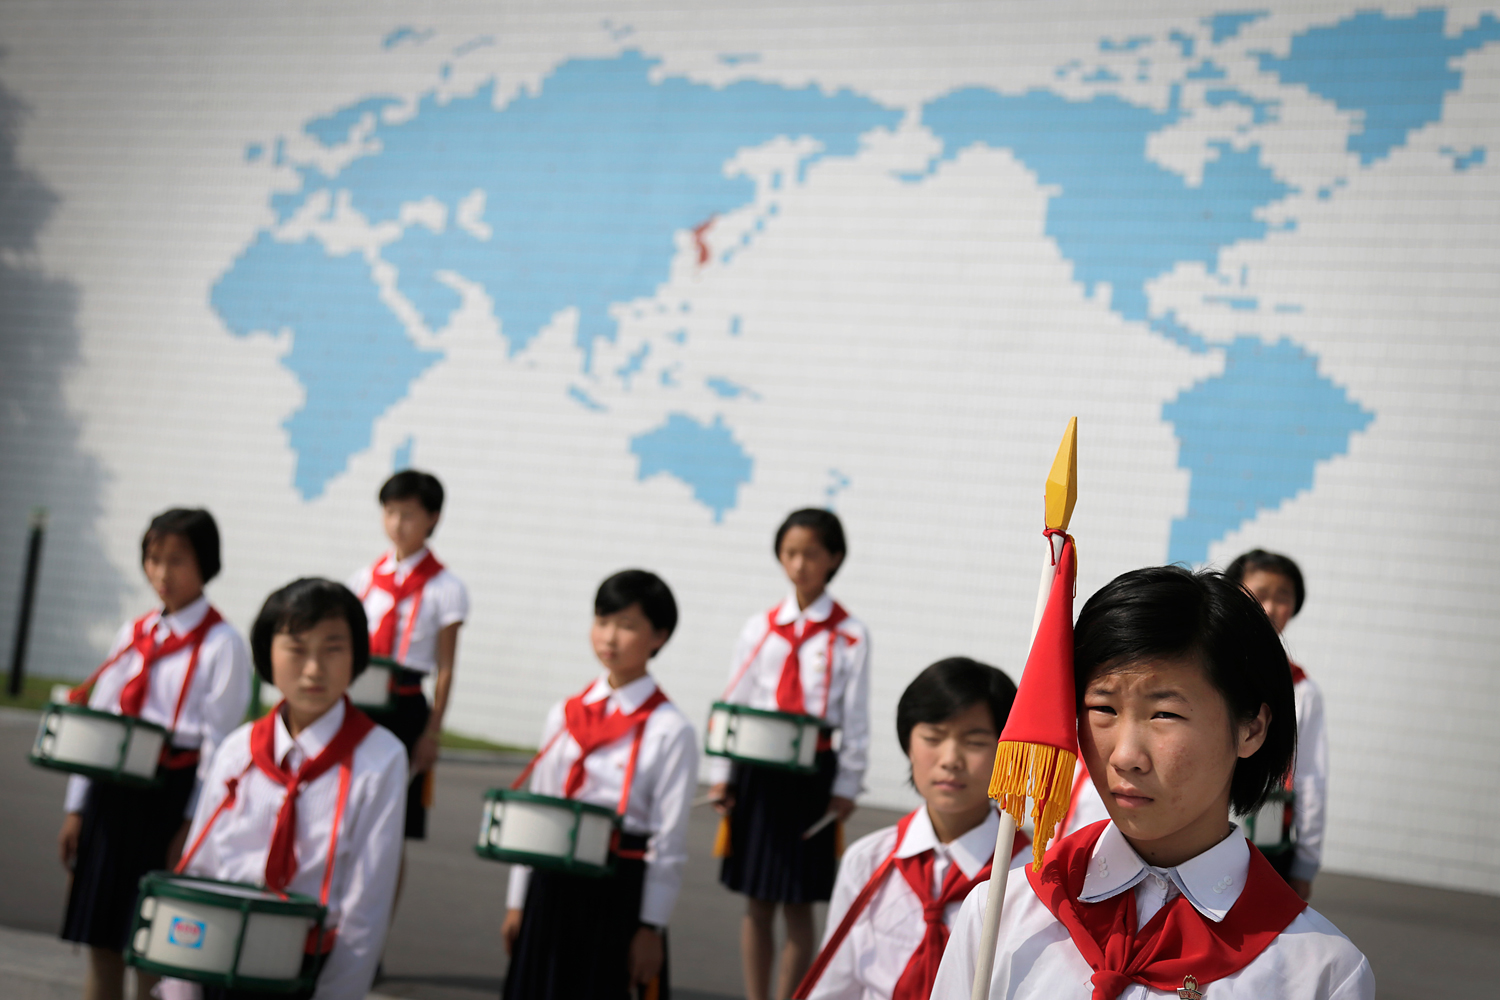 North Korean school girls stand in formation during an opening ceremony for the start of summer activities at the Songdowon International Children's Camp, Tuesday, July 29, 2014, in Wonsan, North Korea.